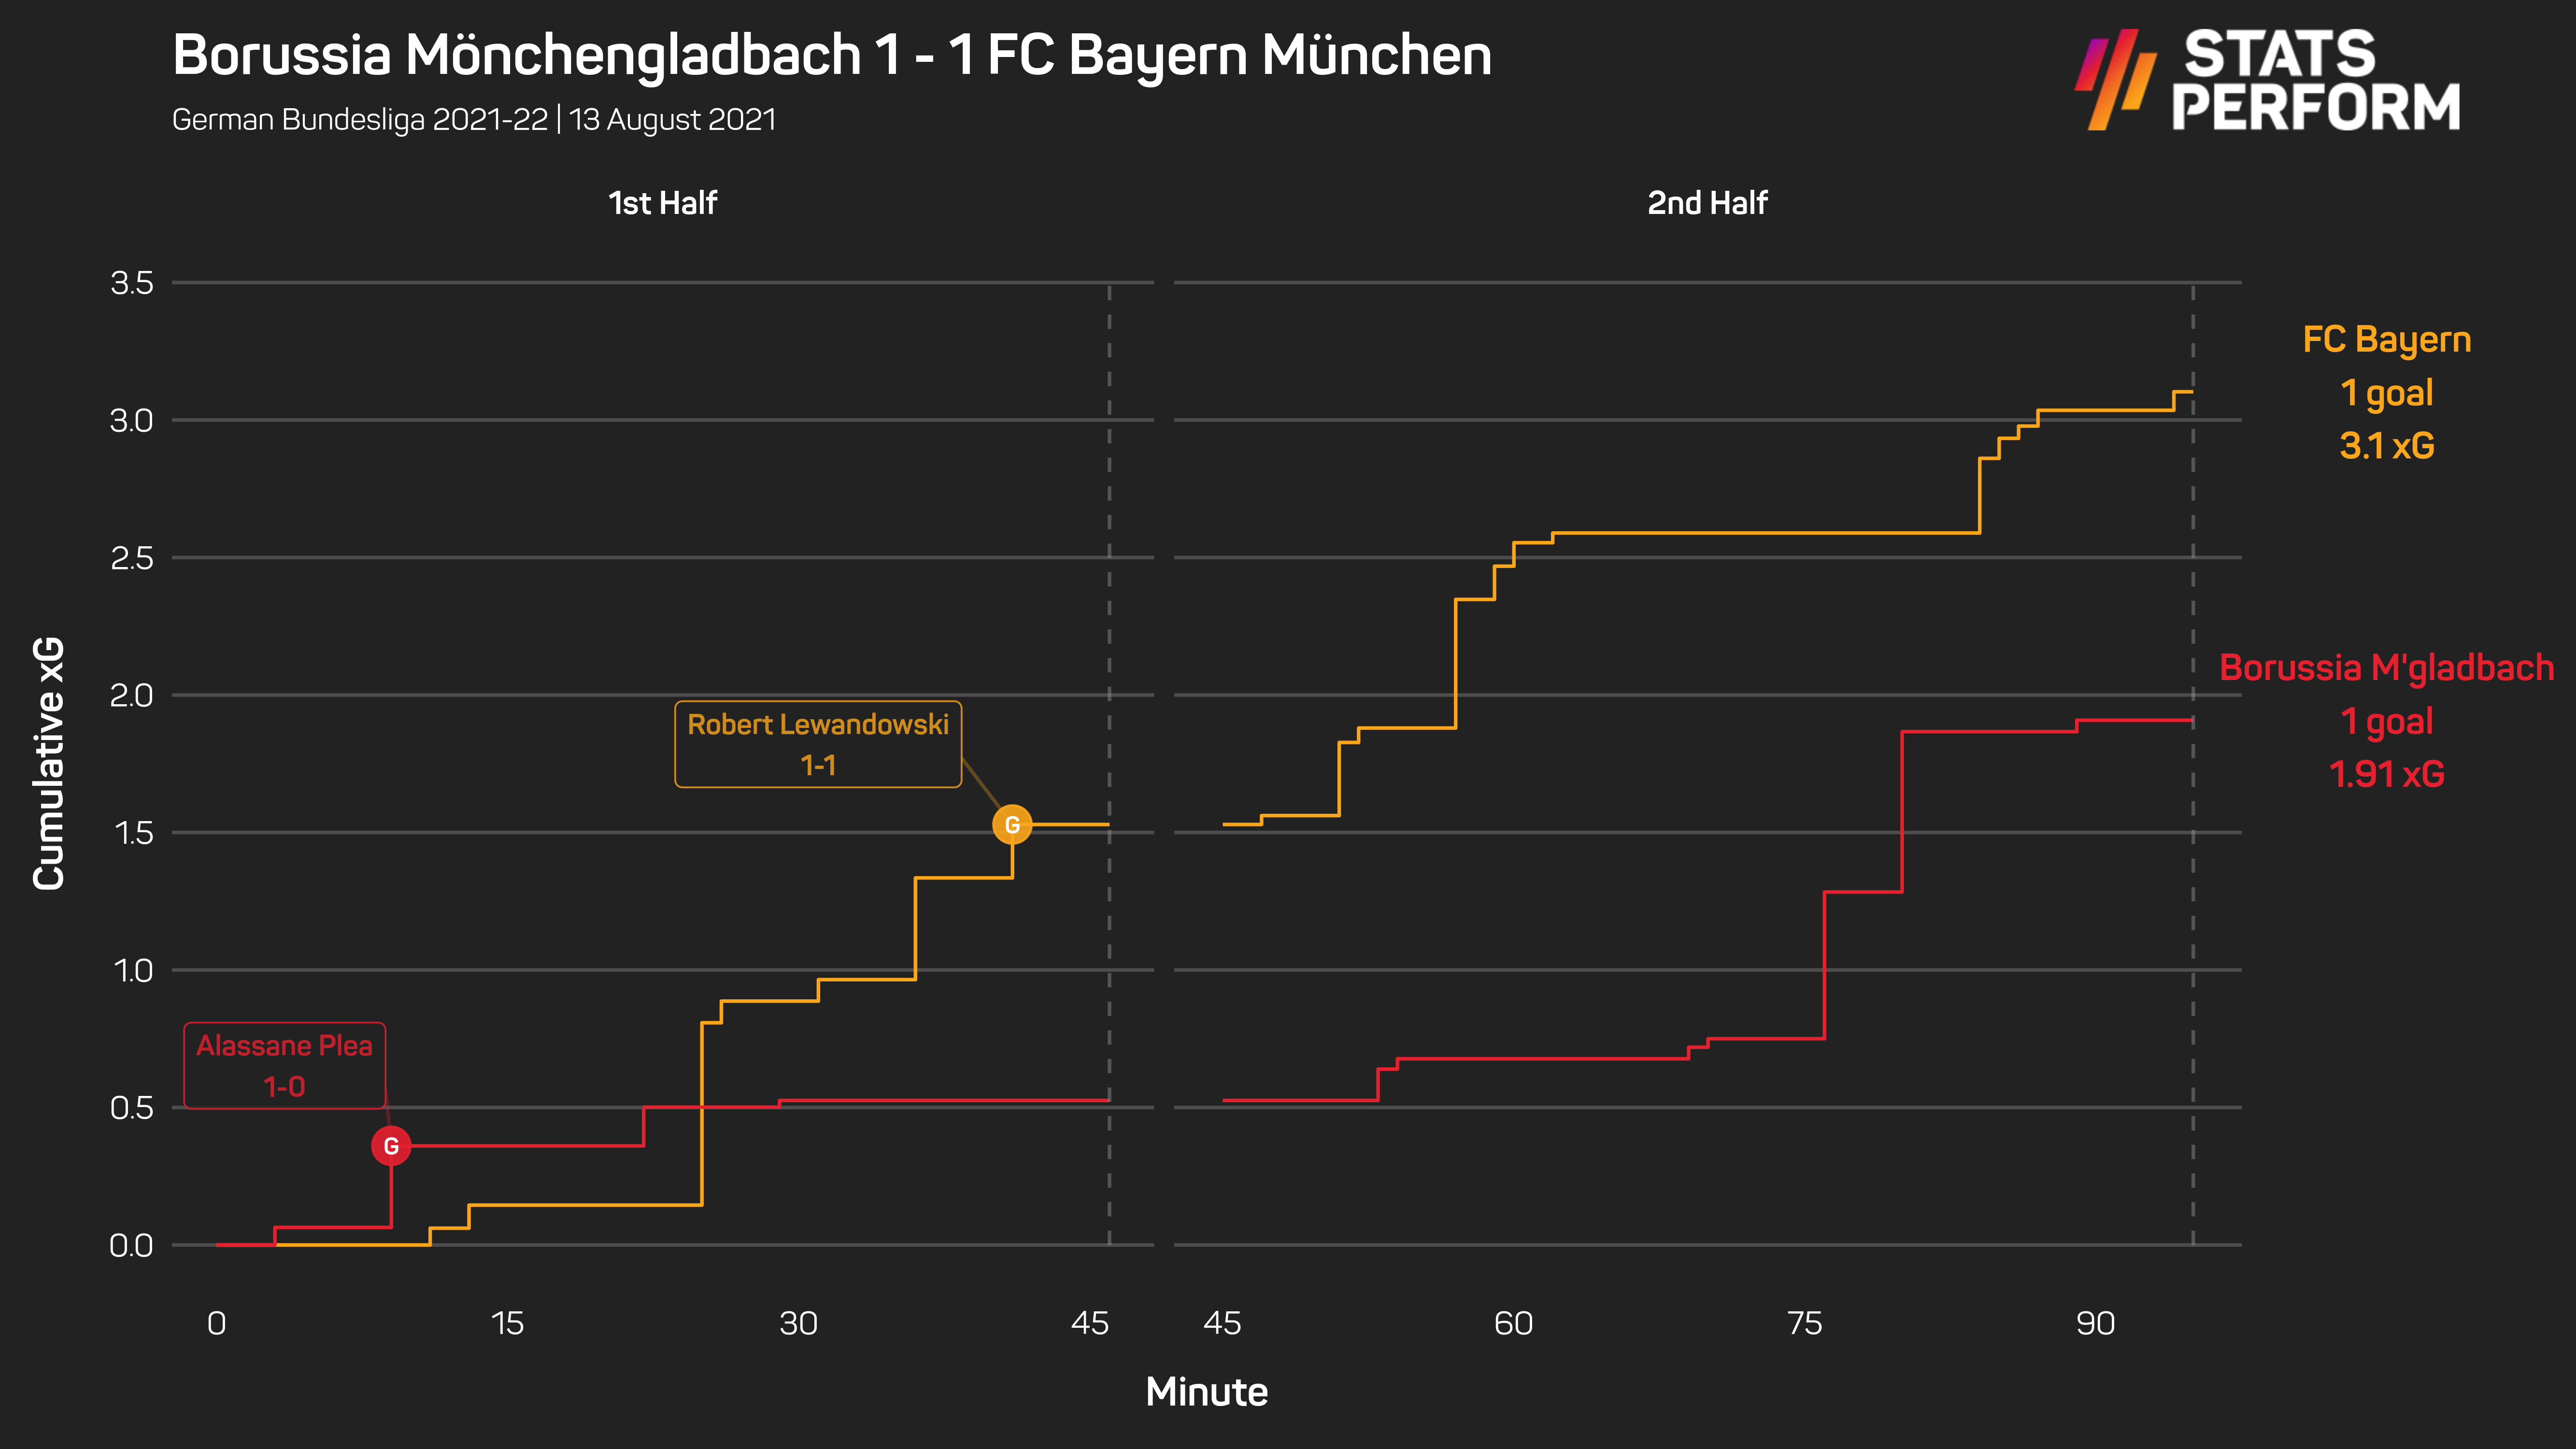 Bayern scored only once despite having 3.1 expected goals